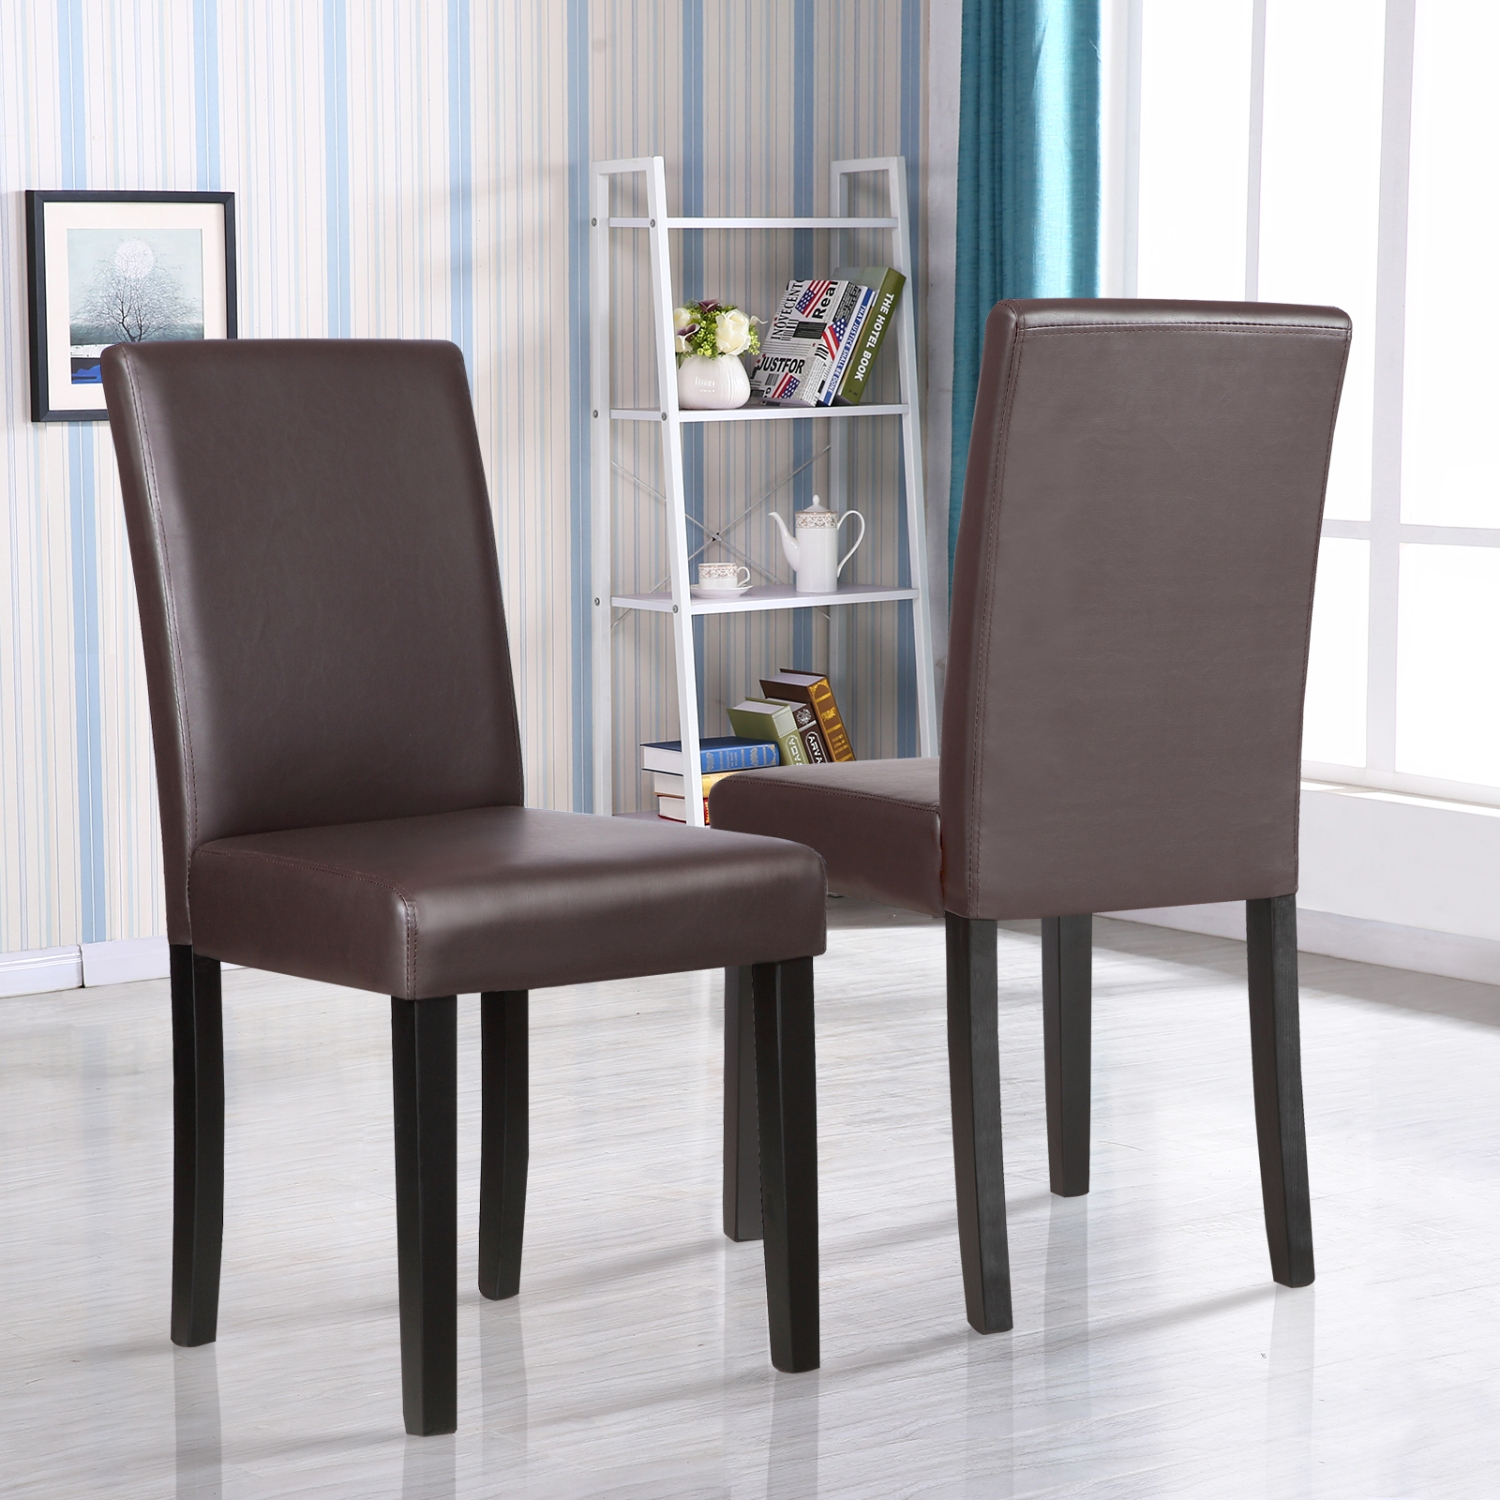 Leather Dining Room Chair: Set Of 2 Kitchen Dinette Dining Room Chair Elegant Design